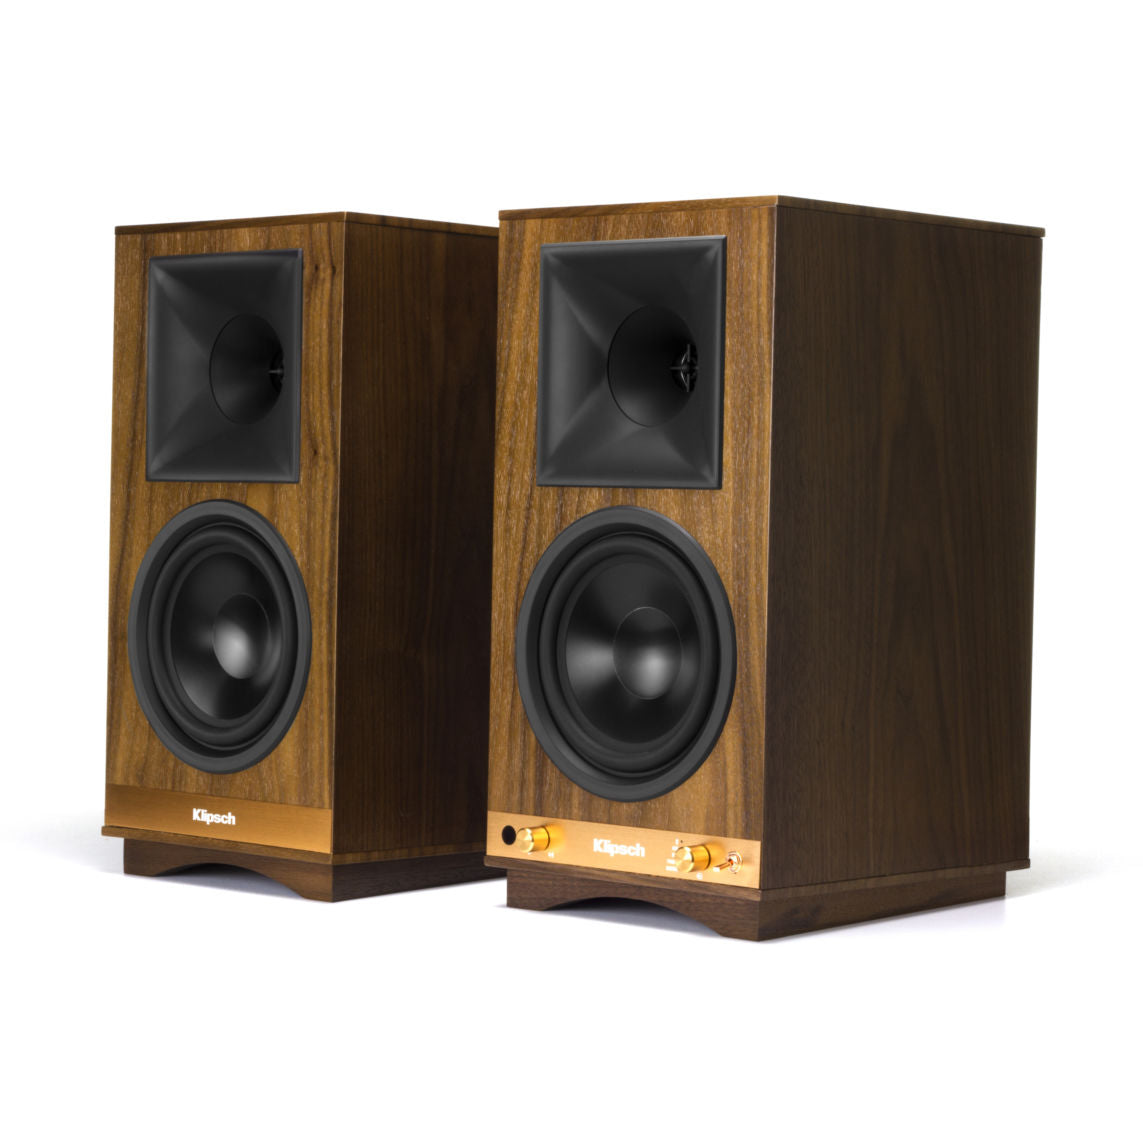 KLIPSCH- THE SIXES POWERED SPEAKERS